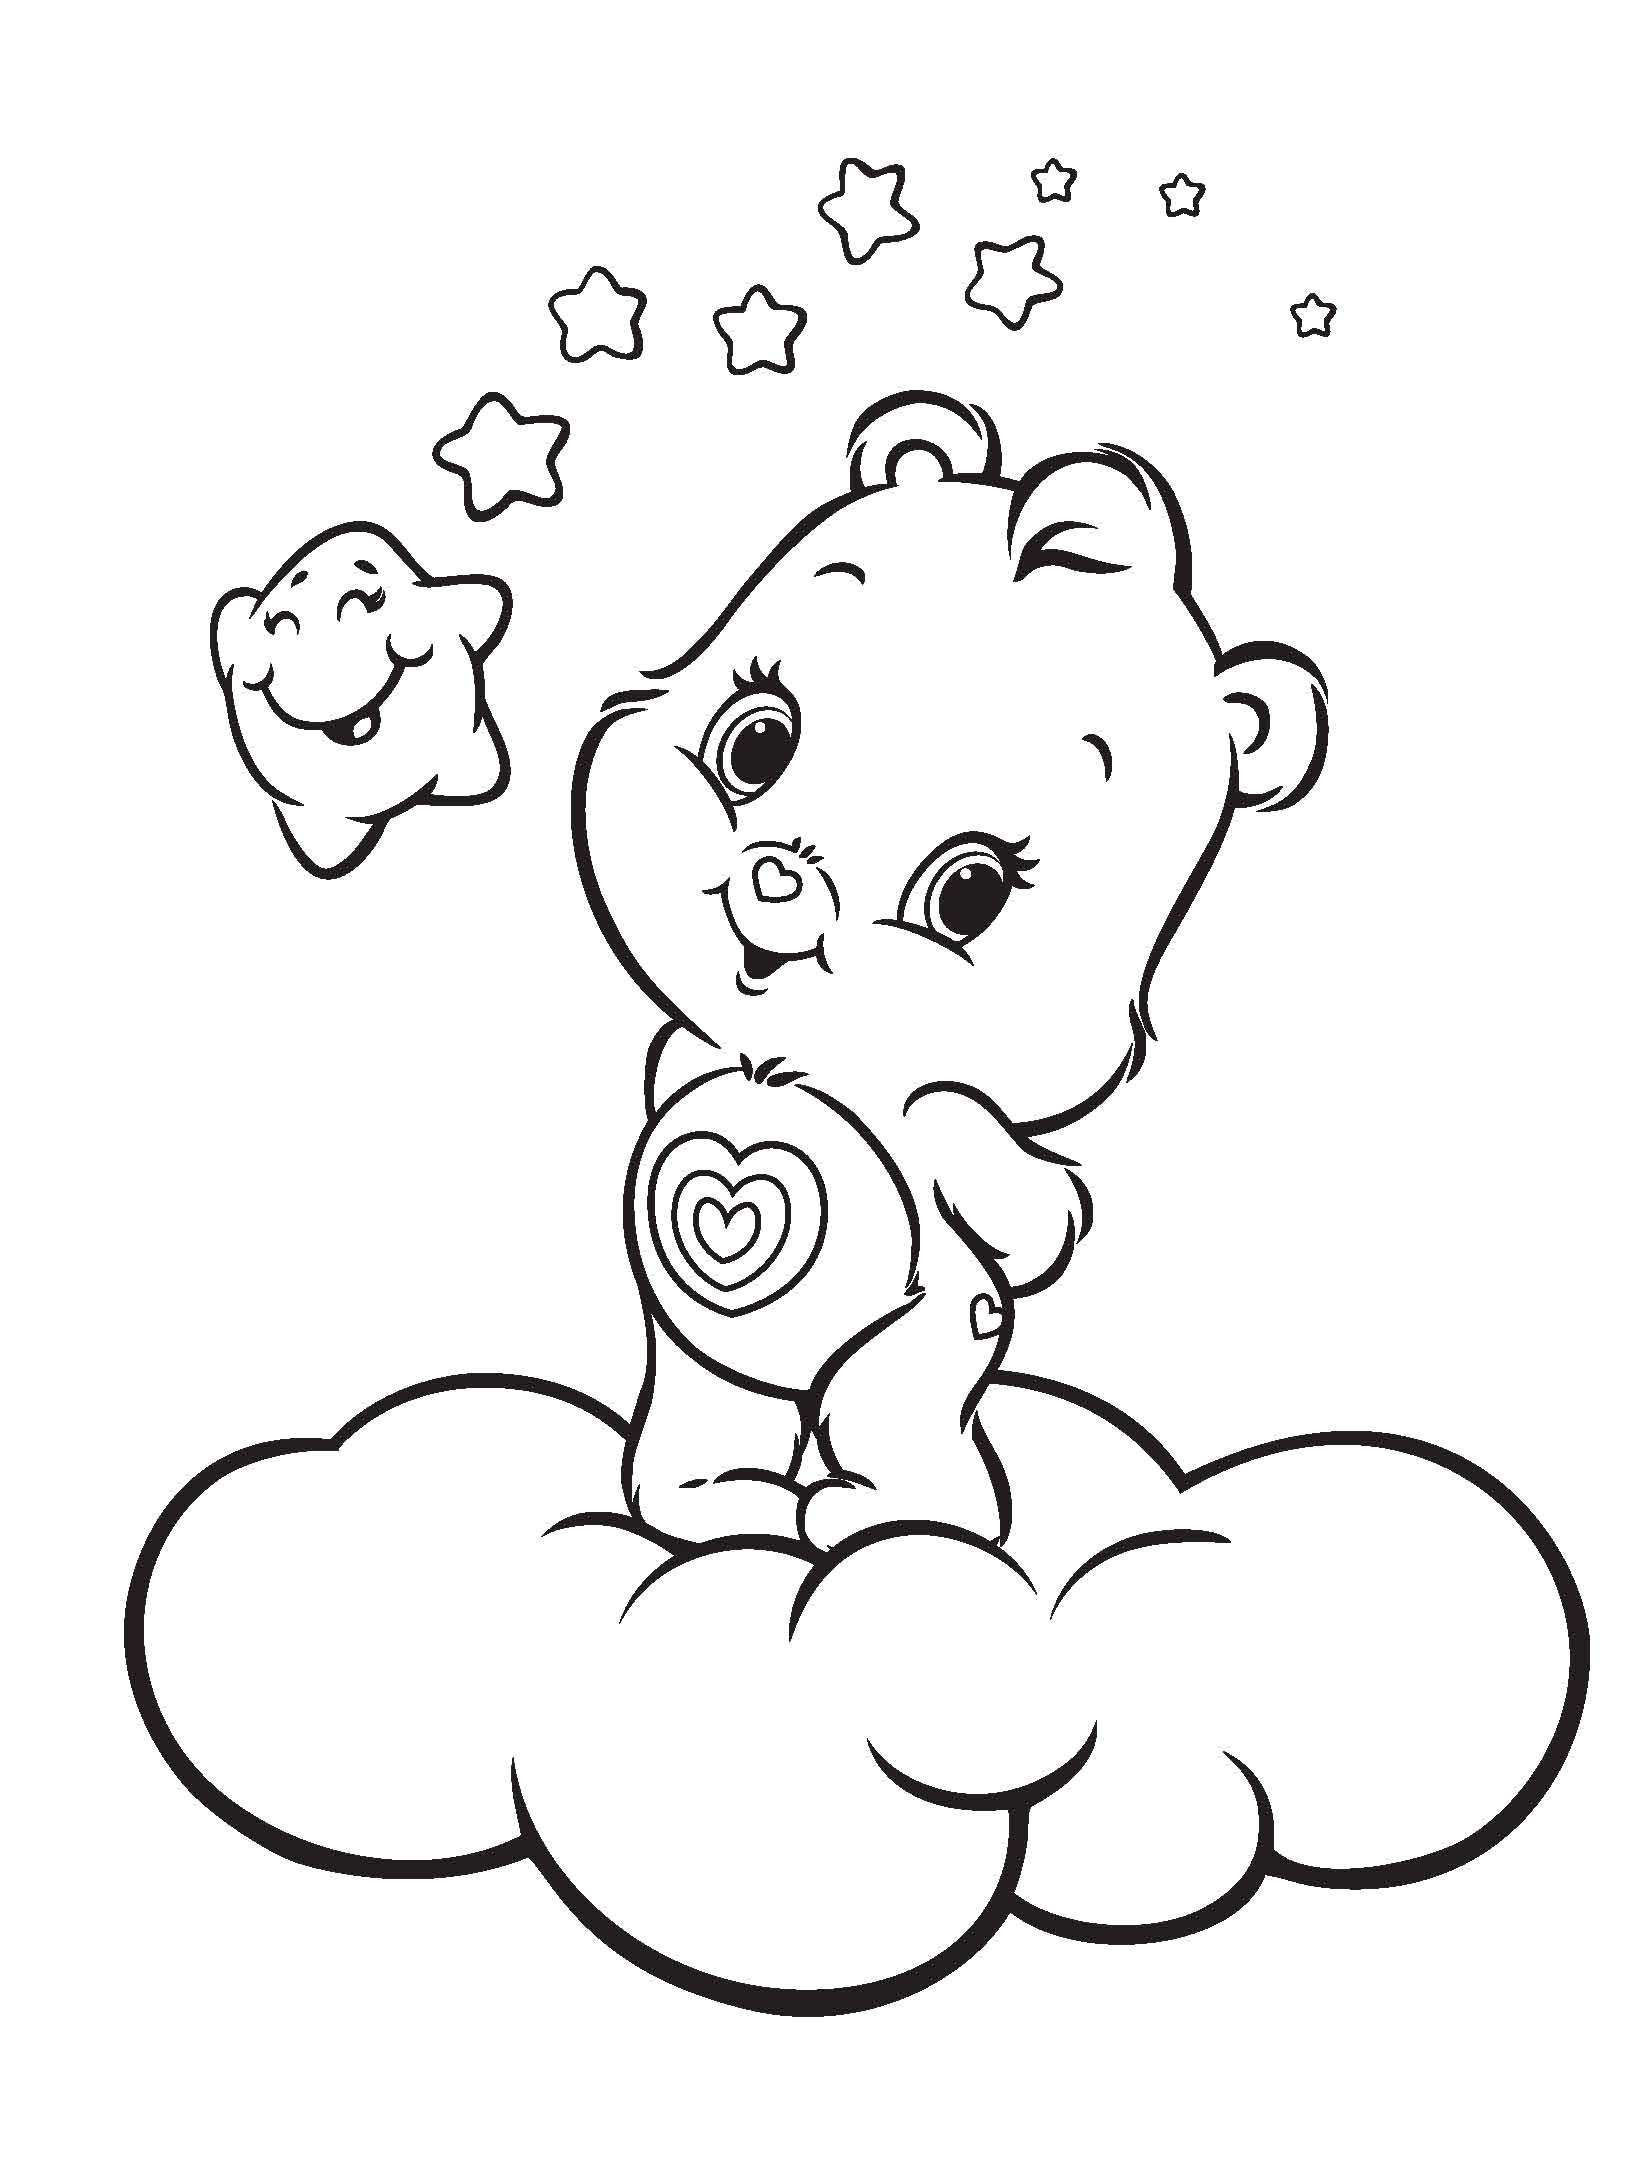 1652x2180 Drawing Care Bear Coloring Pages 11 For Free Online With Care Bear